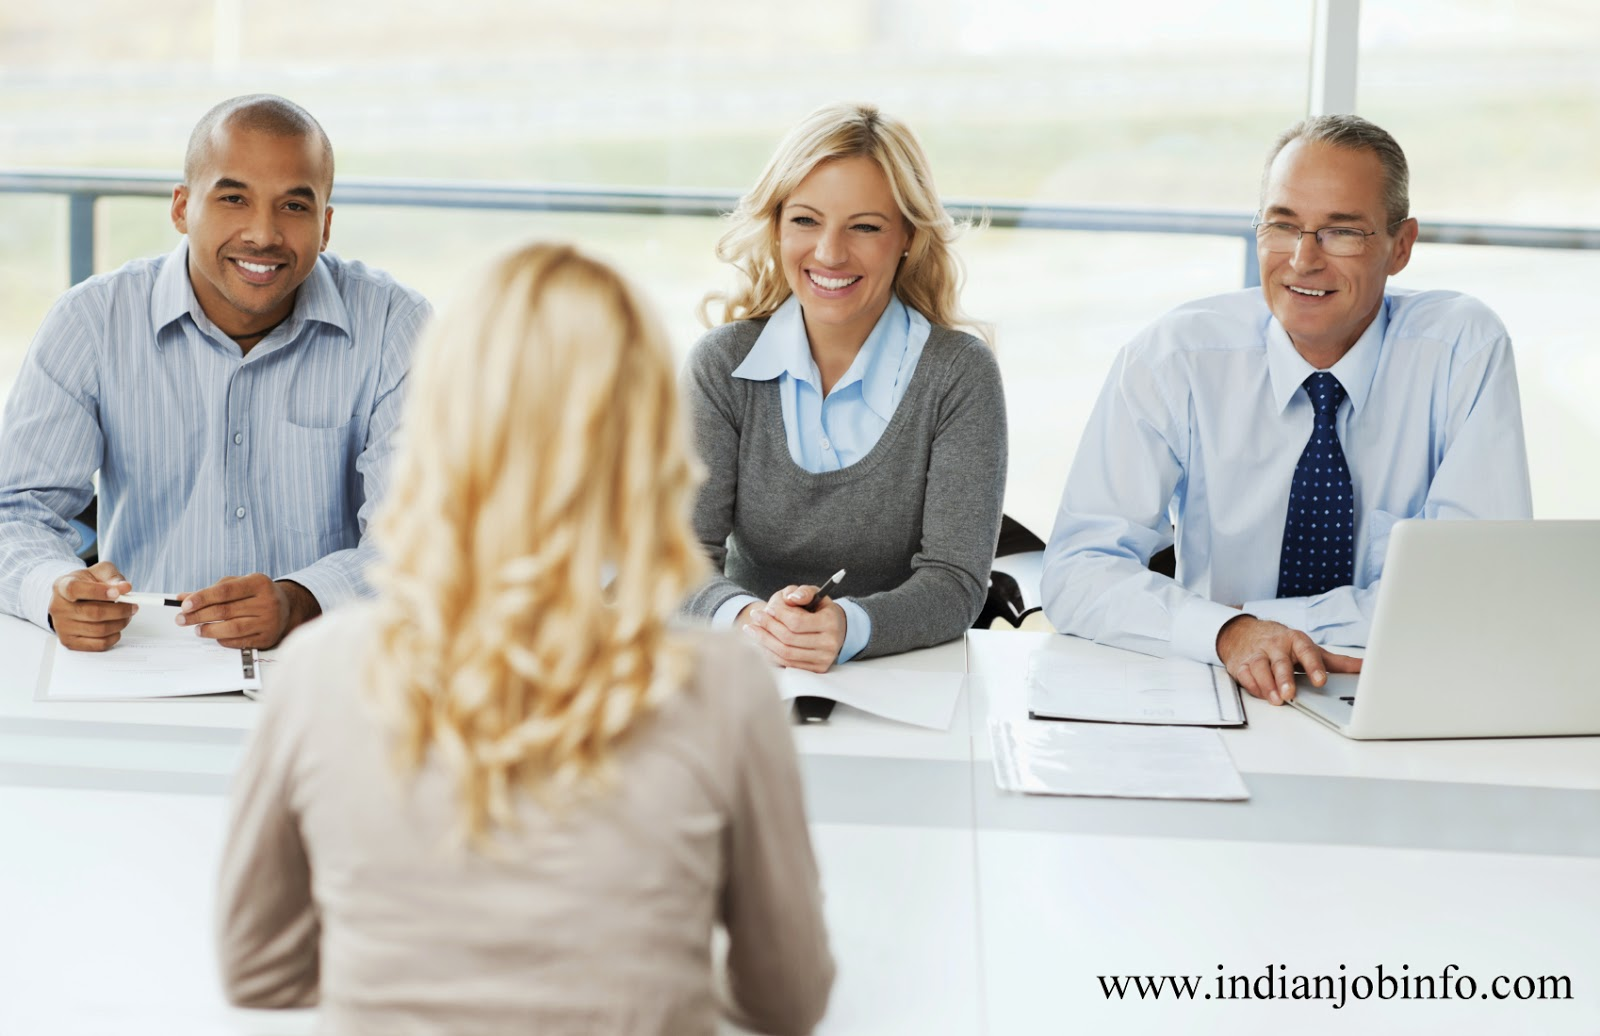 top interview questions and best suggestions n job info top 5 interview questions and best suggestions to hep you out